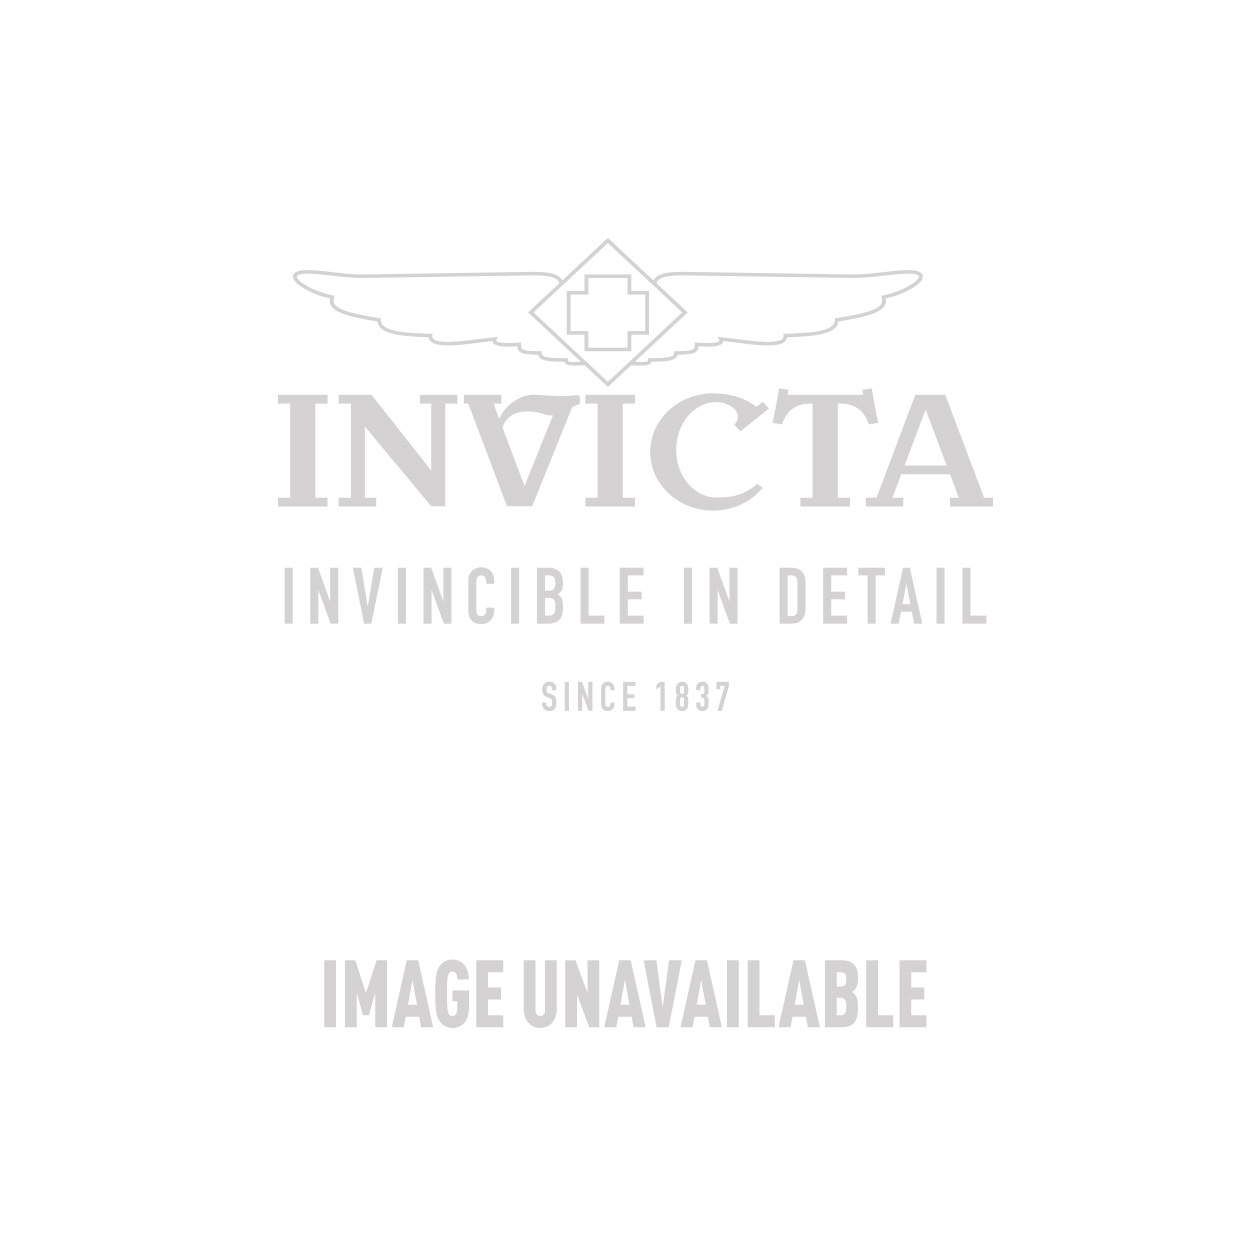 Invicta Specialty Swiss Movement Quartz Watch - Black case Stainless Steel band - Model 1203